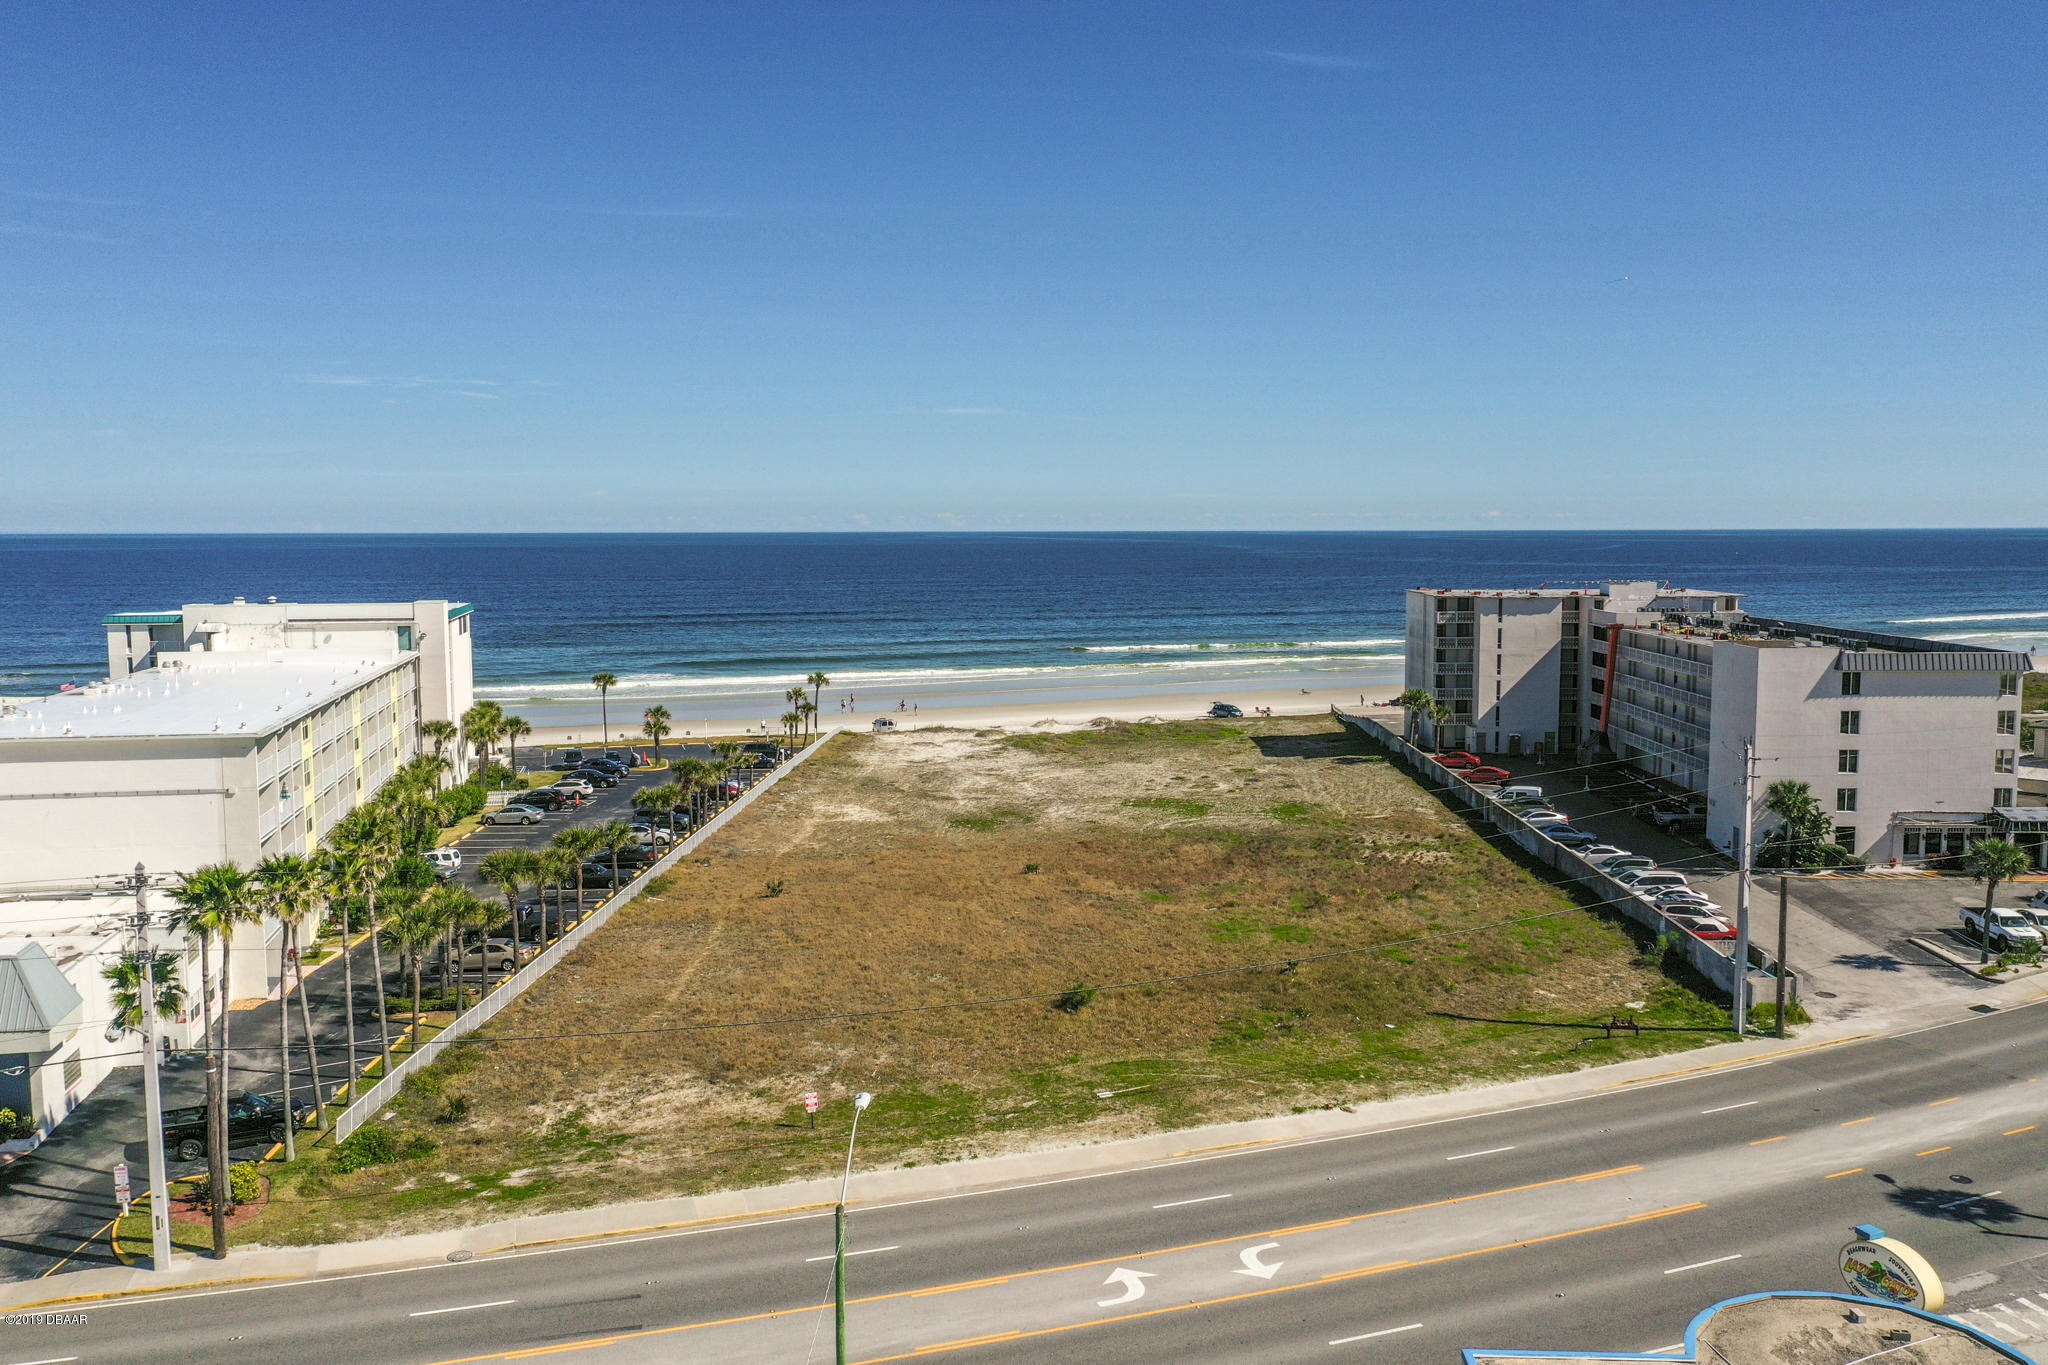 1015 S Atlantic Avenue, Daytona Beach, Florida 0 Bedroom as one of Homes & Land Real Estate